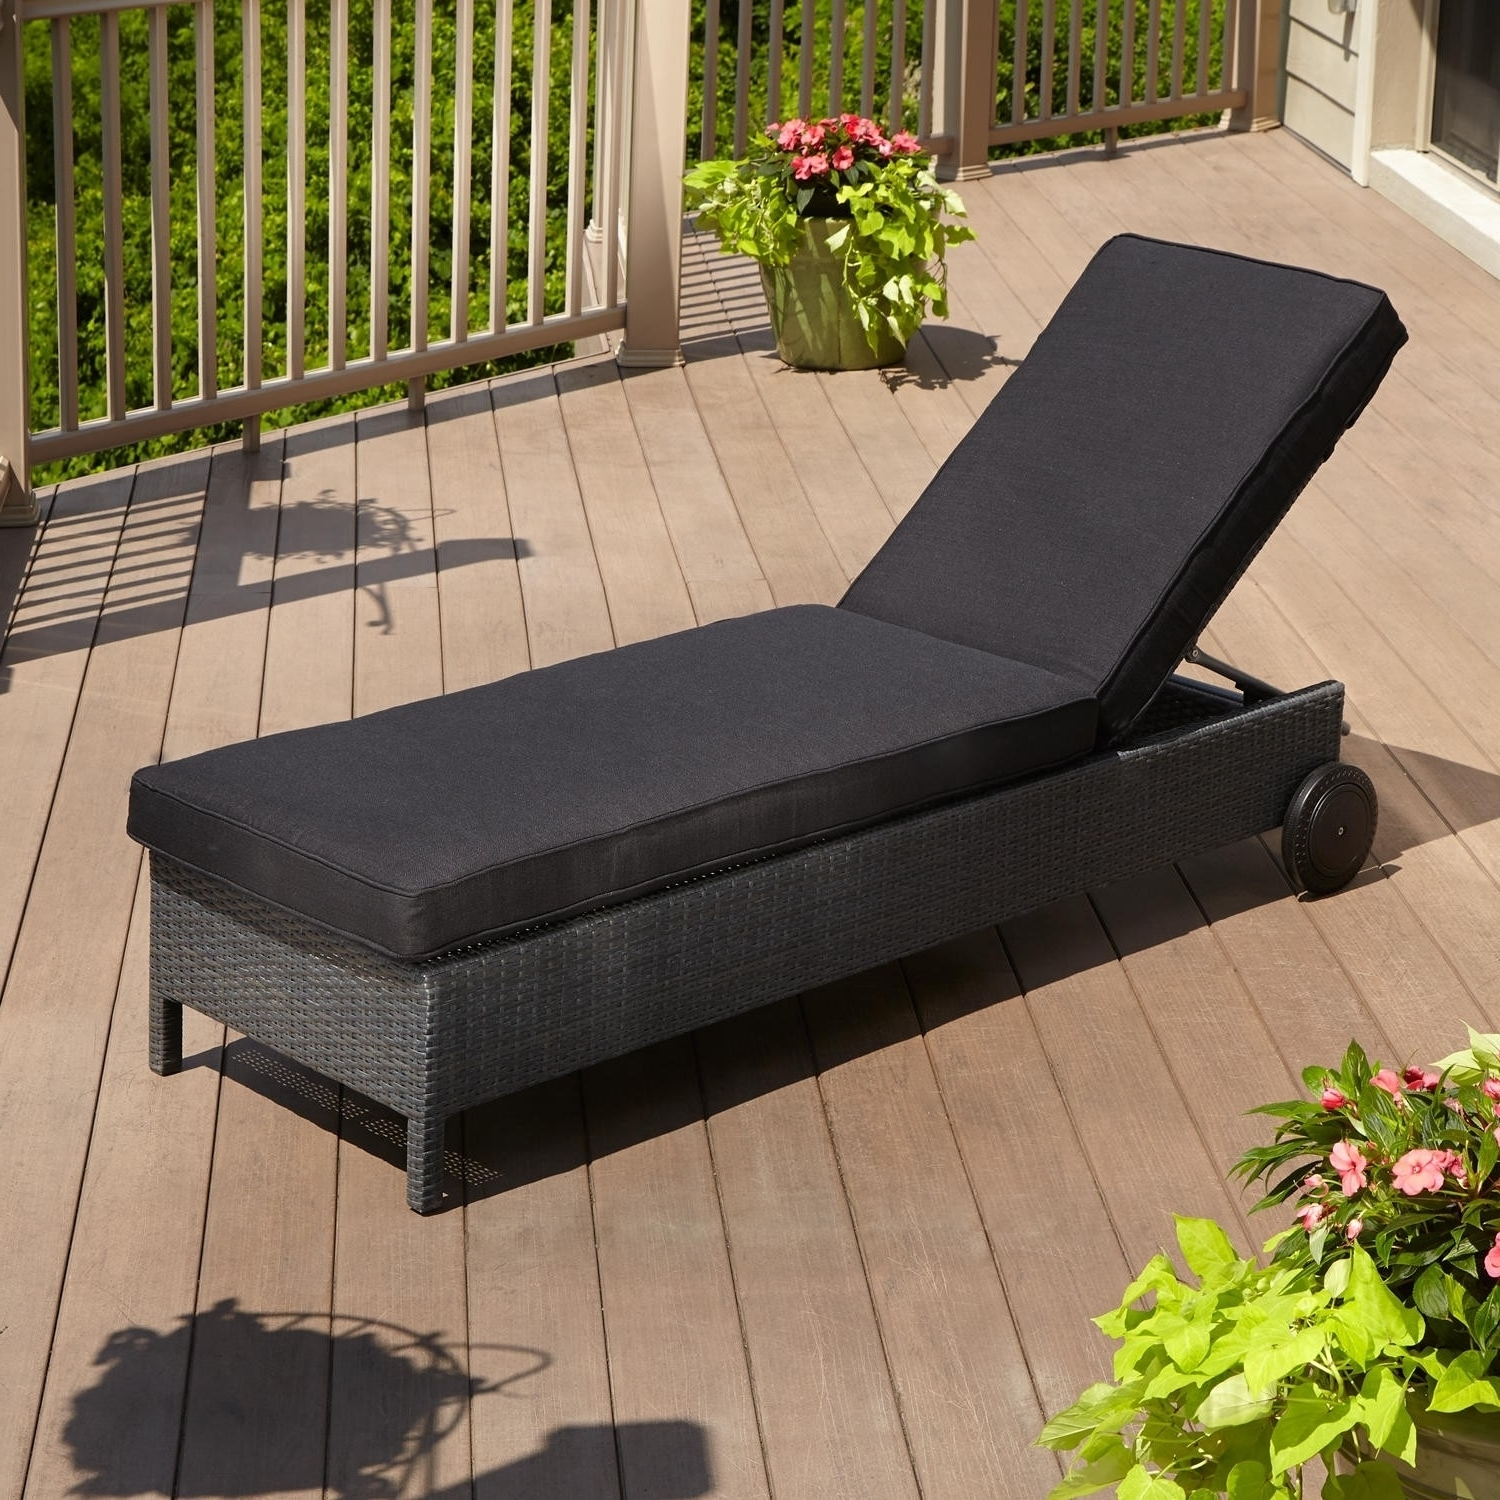 Convertible Chair : Outdoor Garden Chair Cushions Lounge Seat Intended For 2018 Inexpensive Outdoor Chaise Lounge Chairs (View 3 of 15)